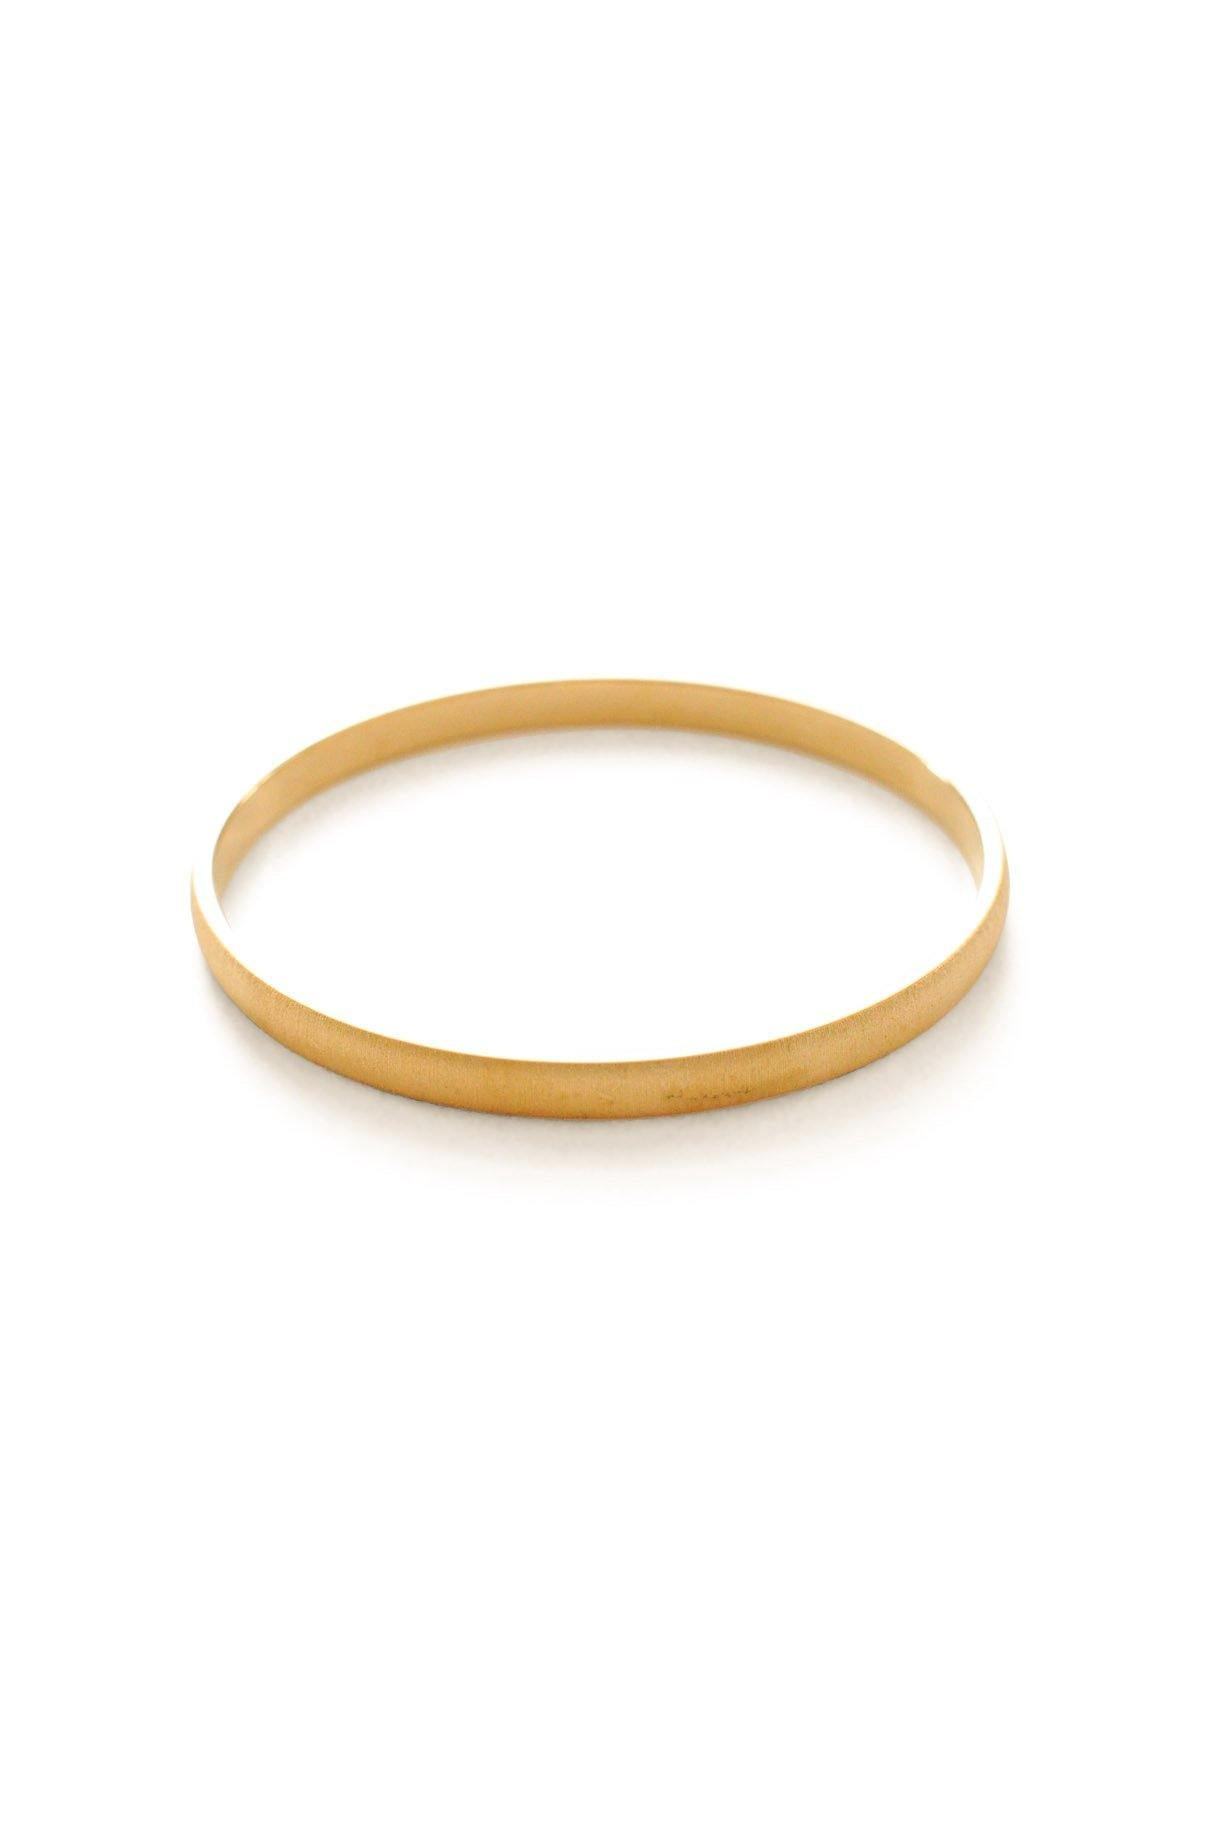 Thin Etched Gold Bangle